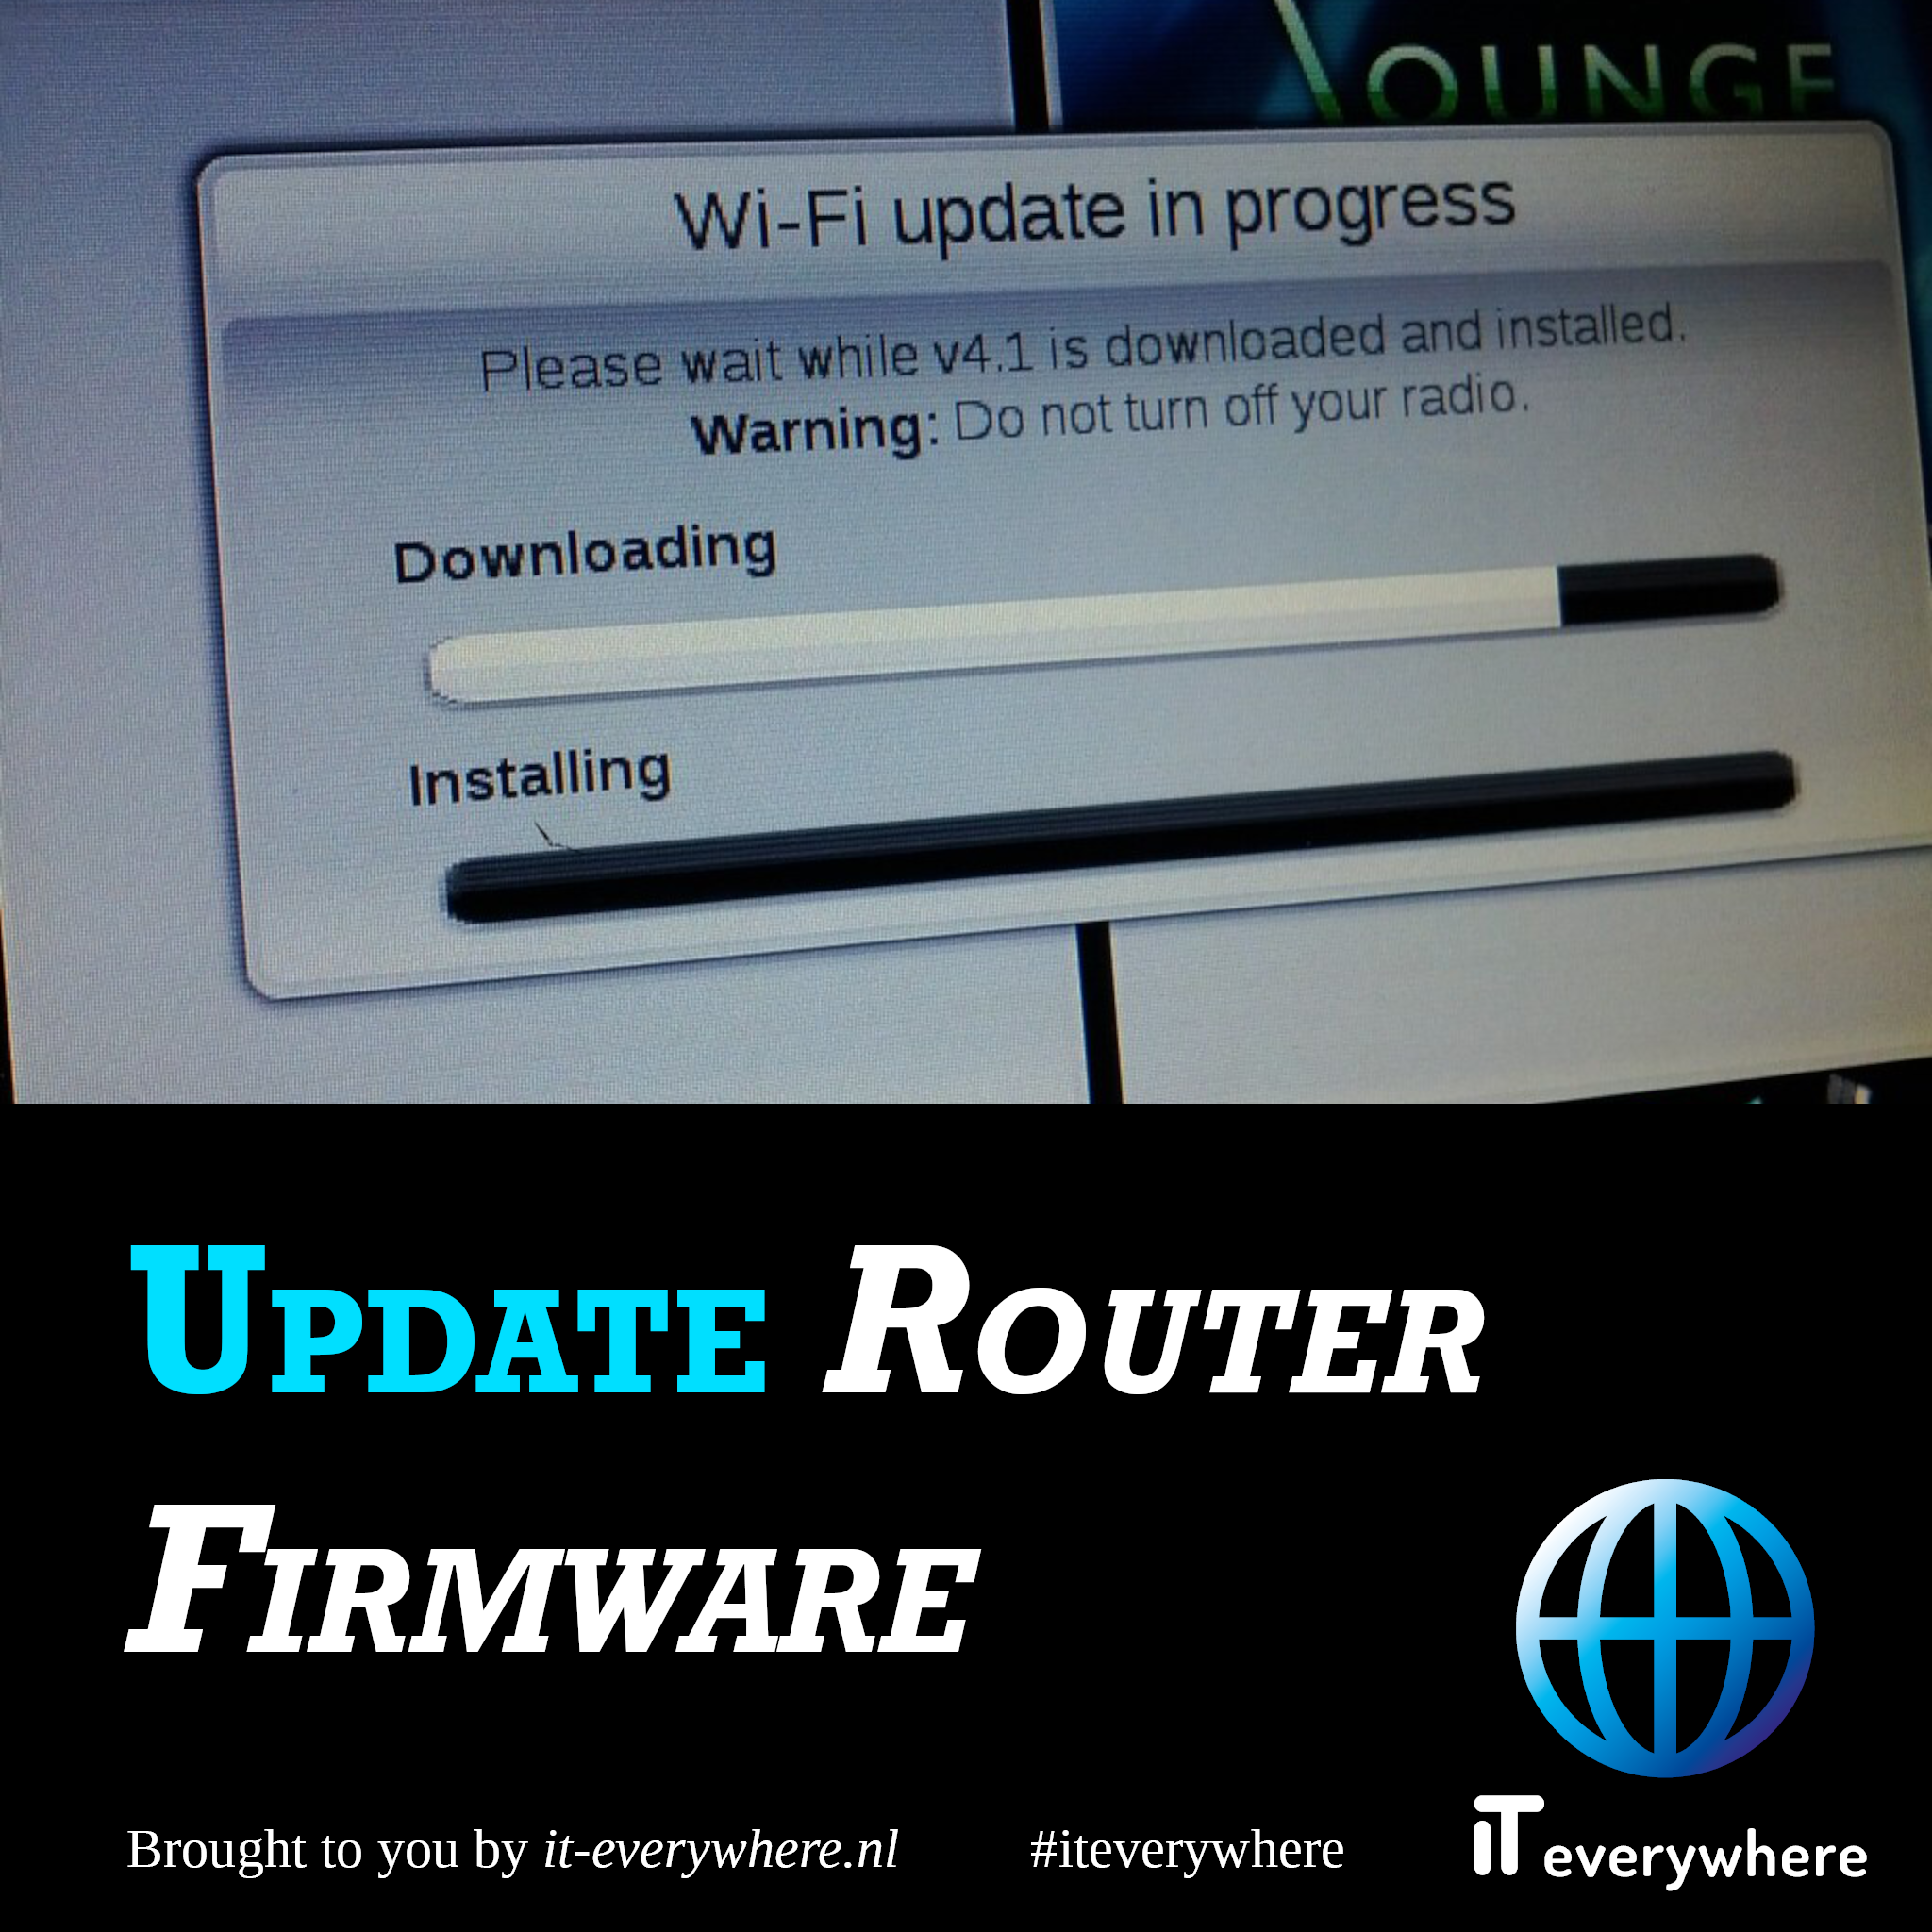 Update router firmware/software